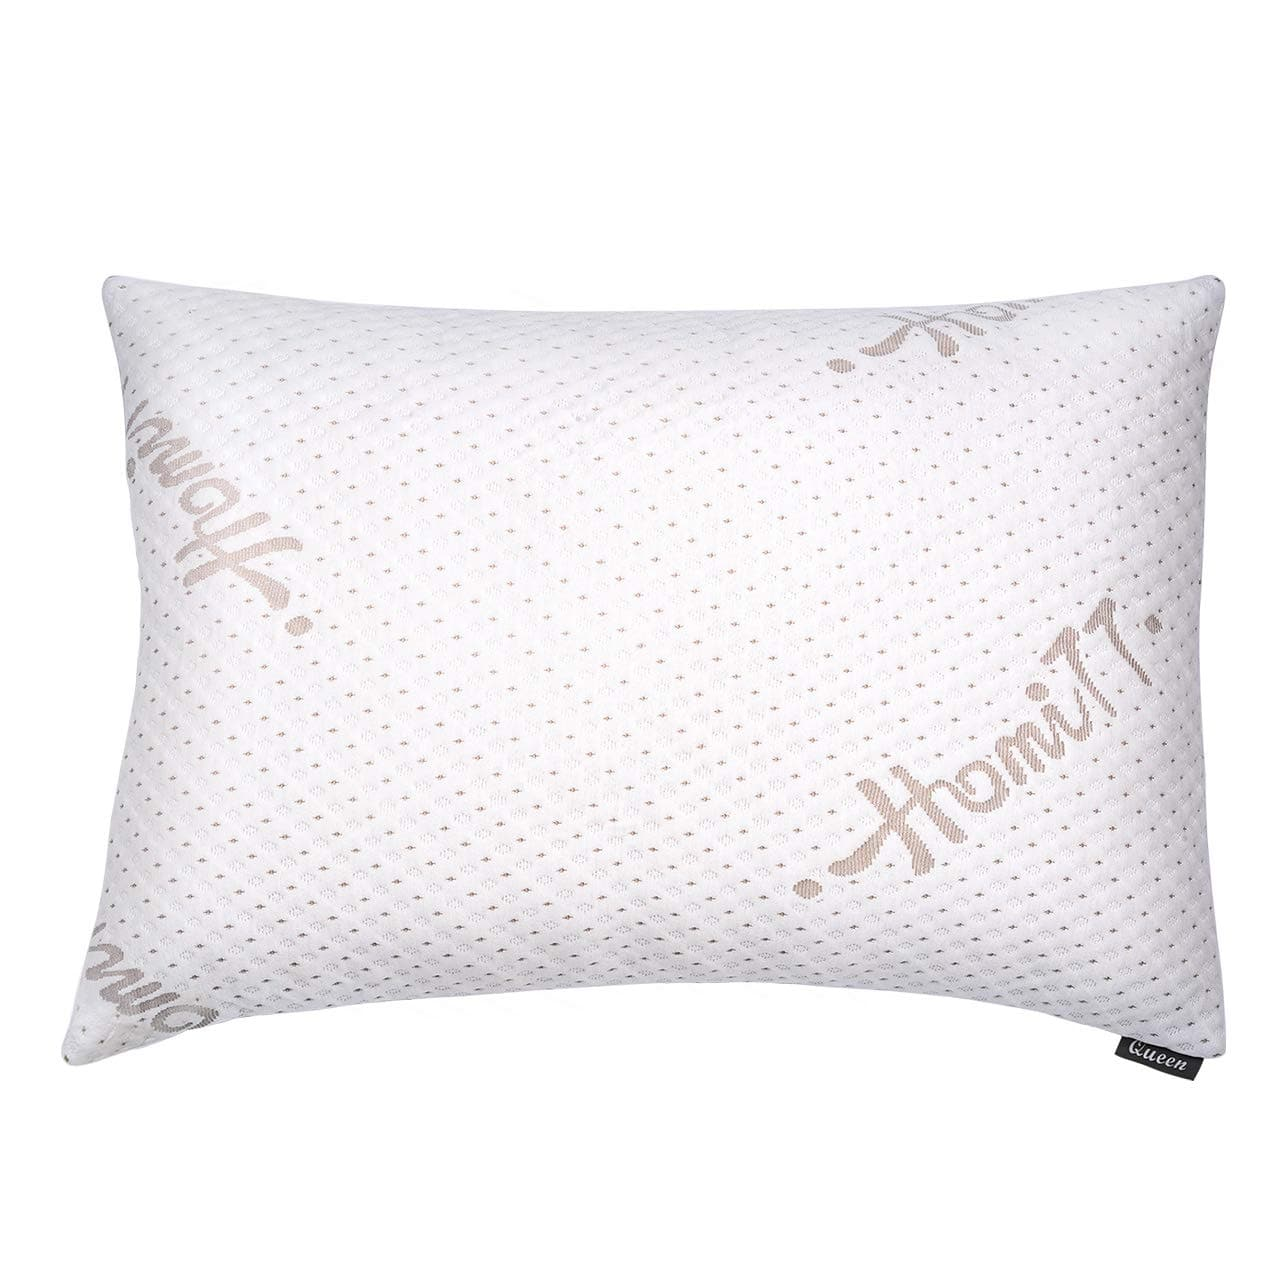 Bamboo Shredded Memory Foam Pillow with Washable and Removable Cover (Queen Size) $17.15